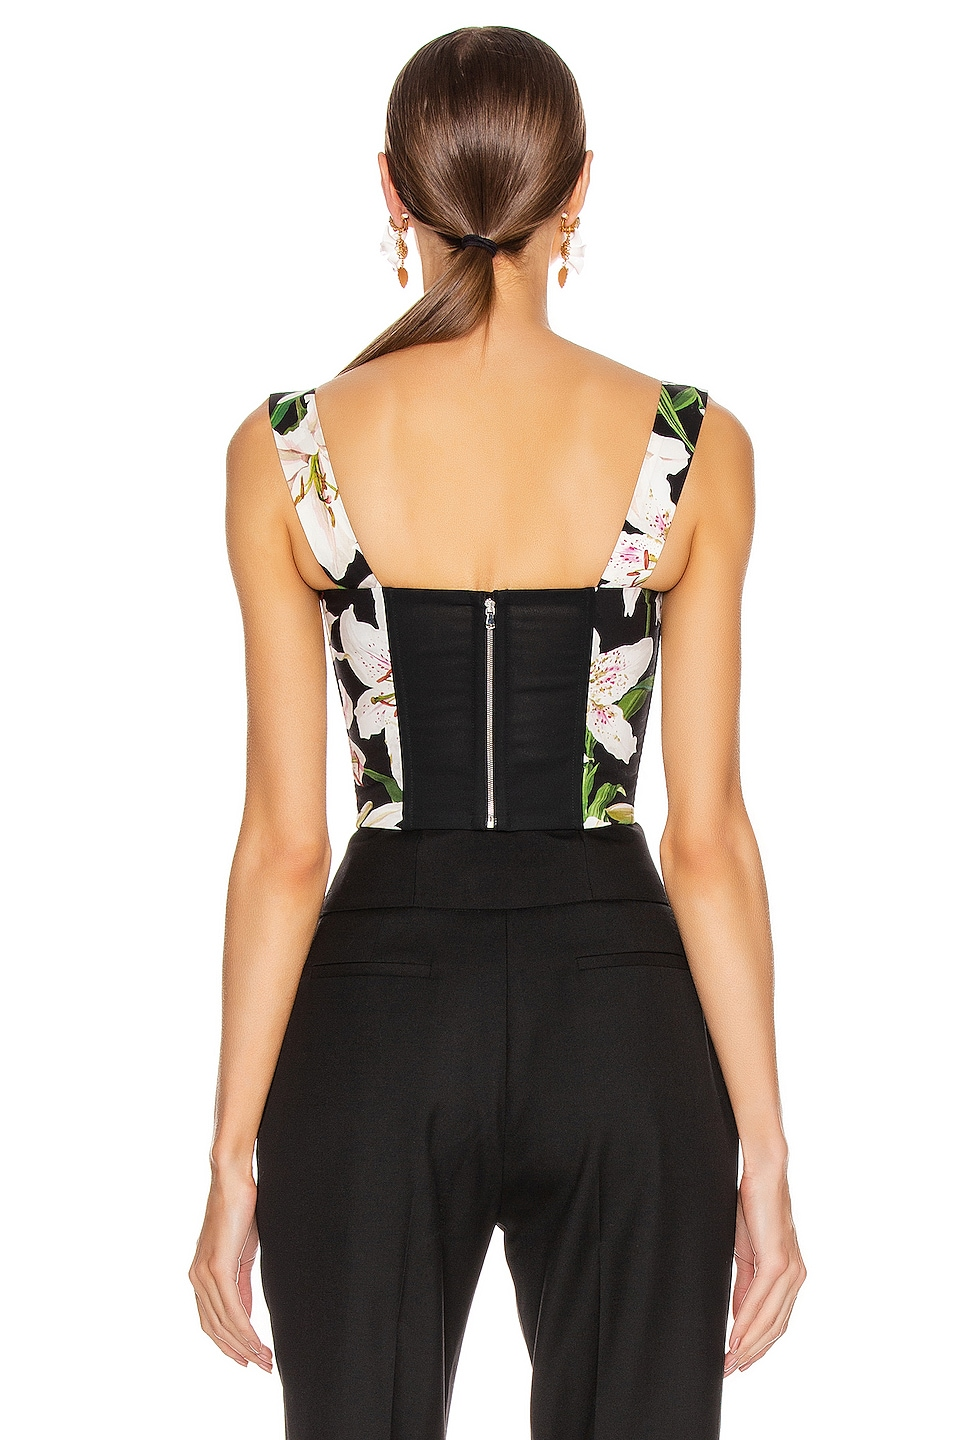 Image 4 of Dolce & Gabbana Lace Up Short Corset Top in Black Floral